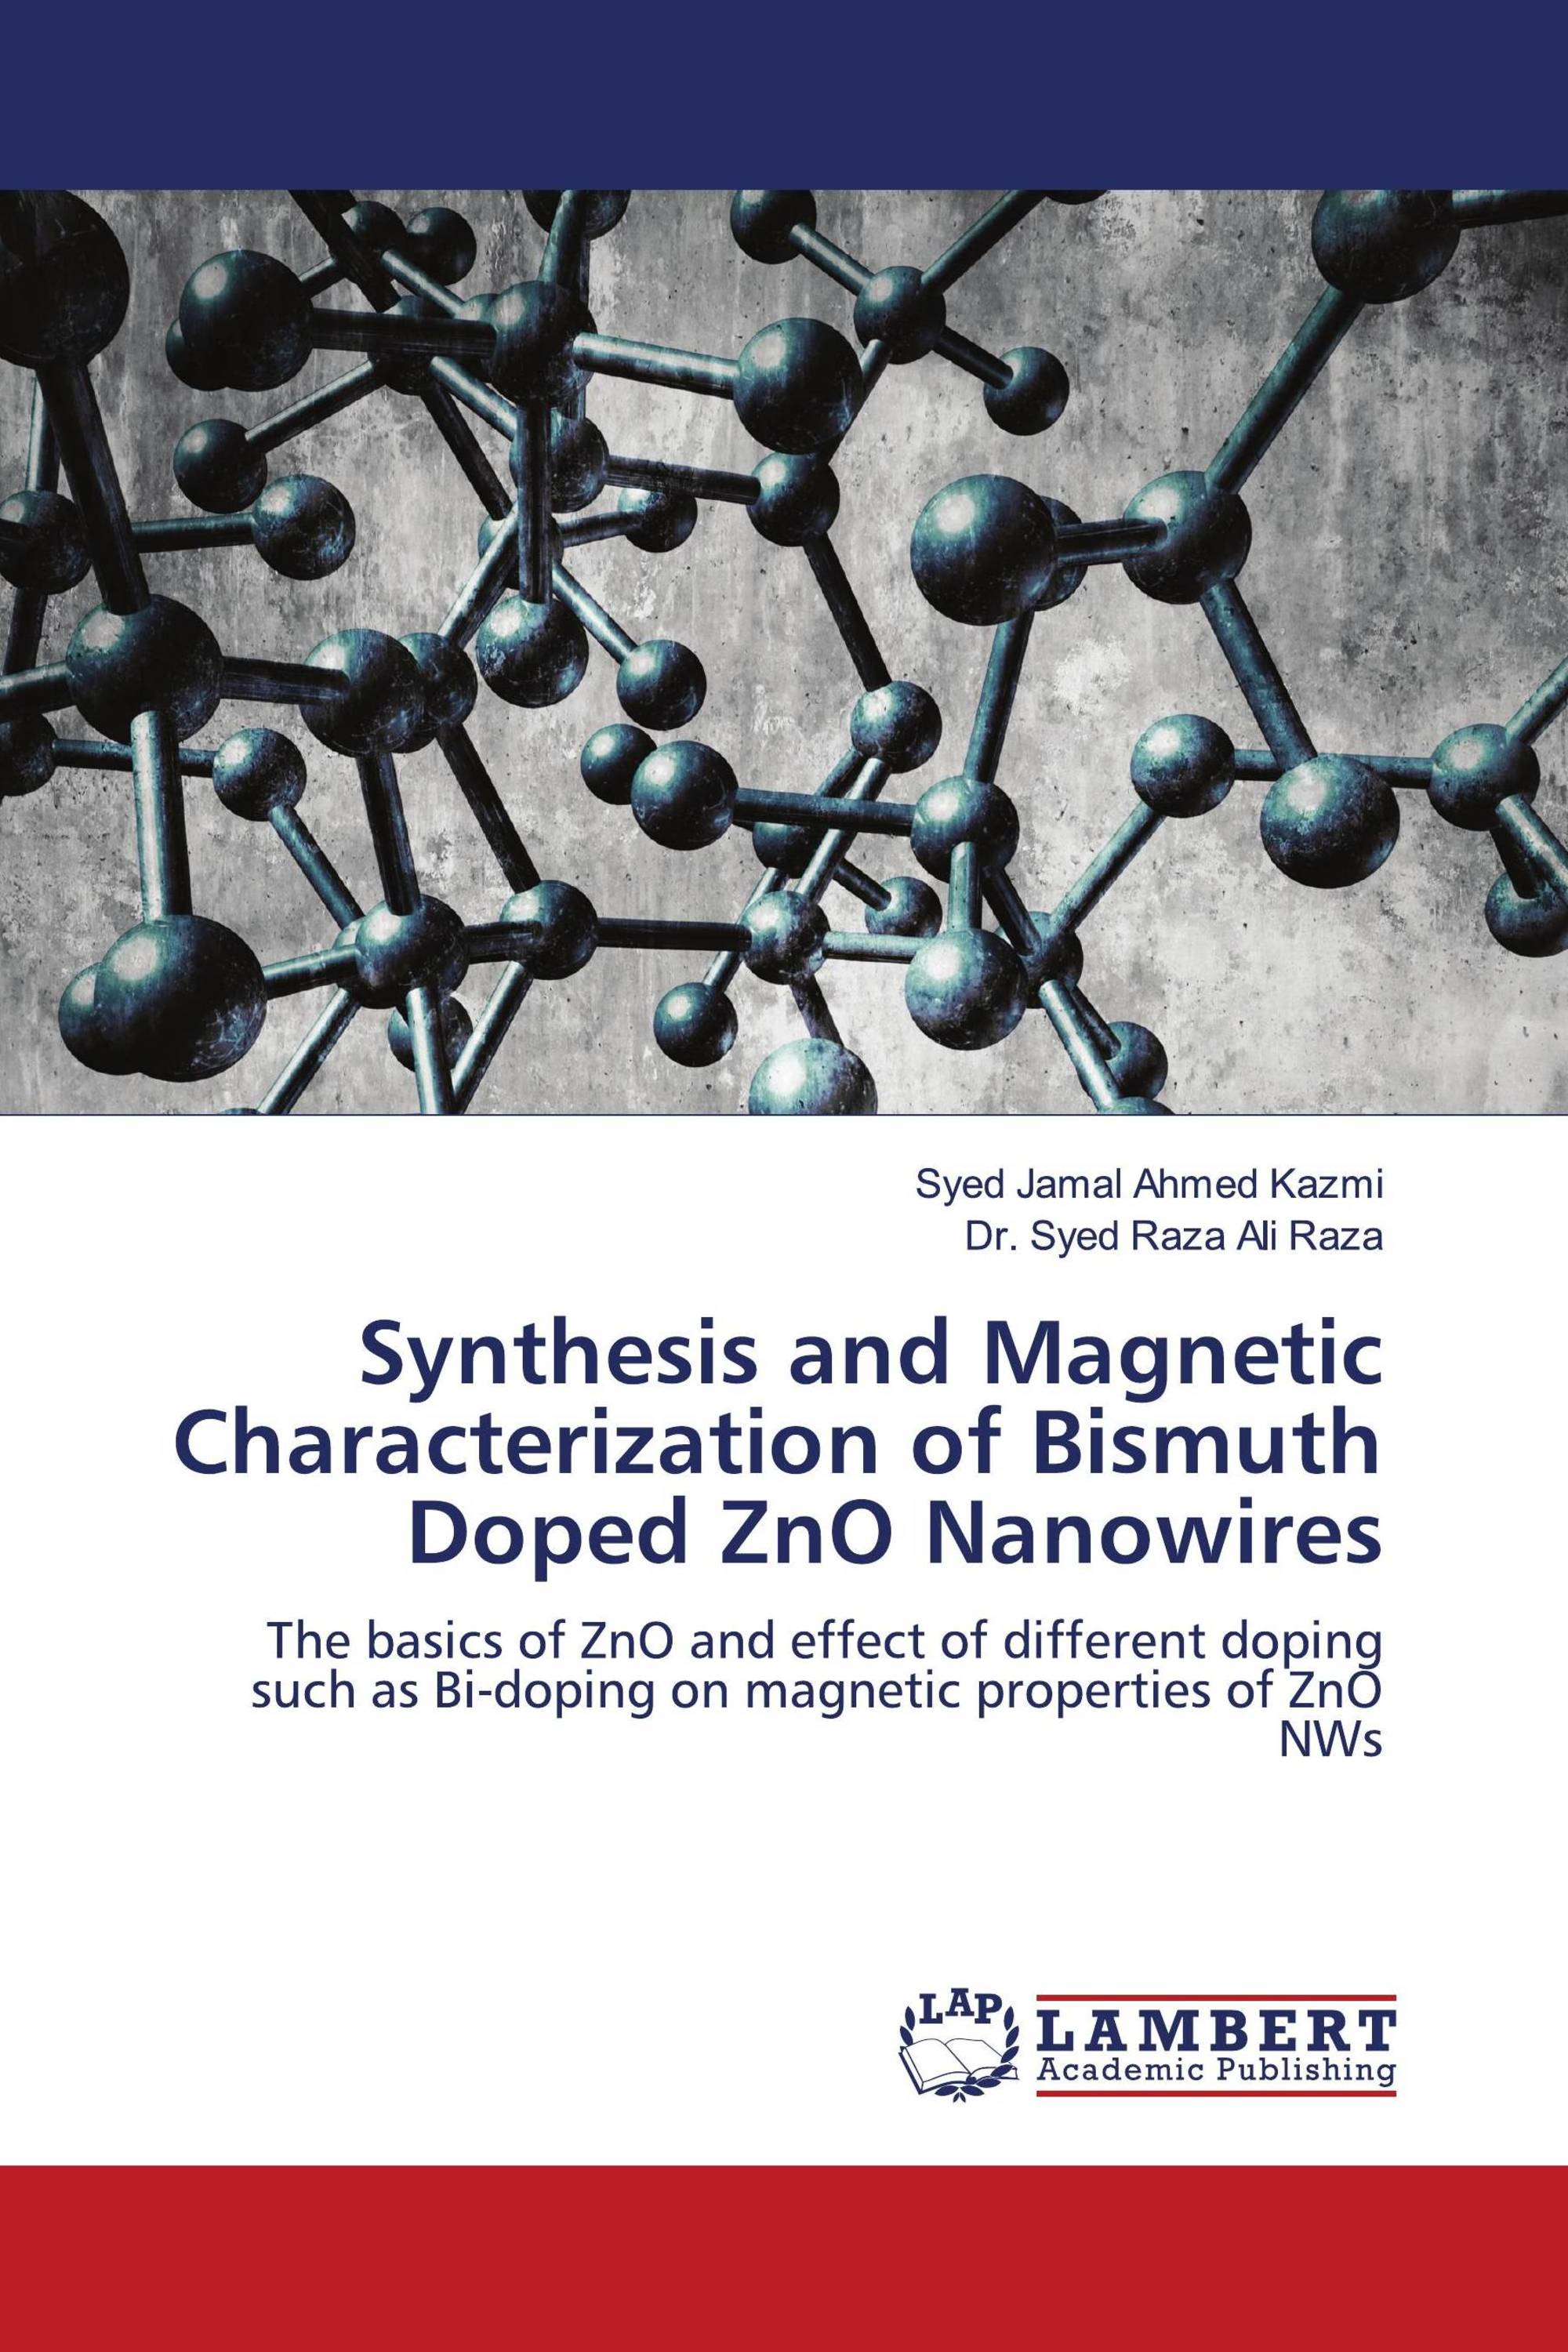 Synthesis and Magnetic Characterization of Bismuth Doped ZnO Nanowires